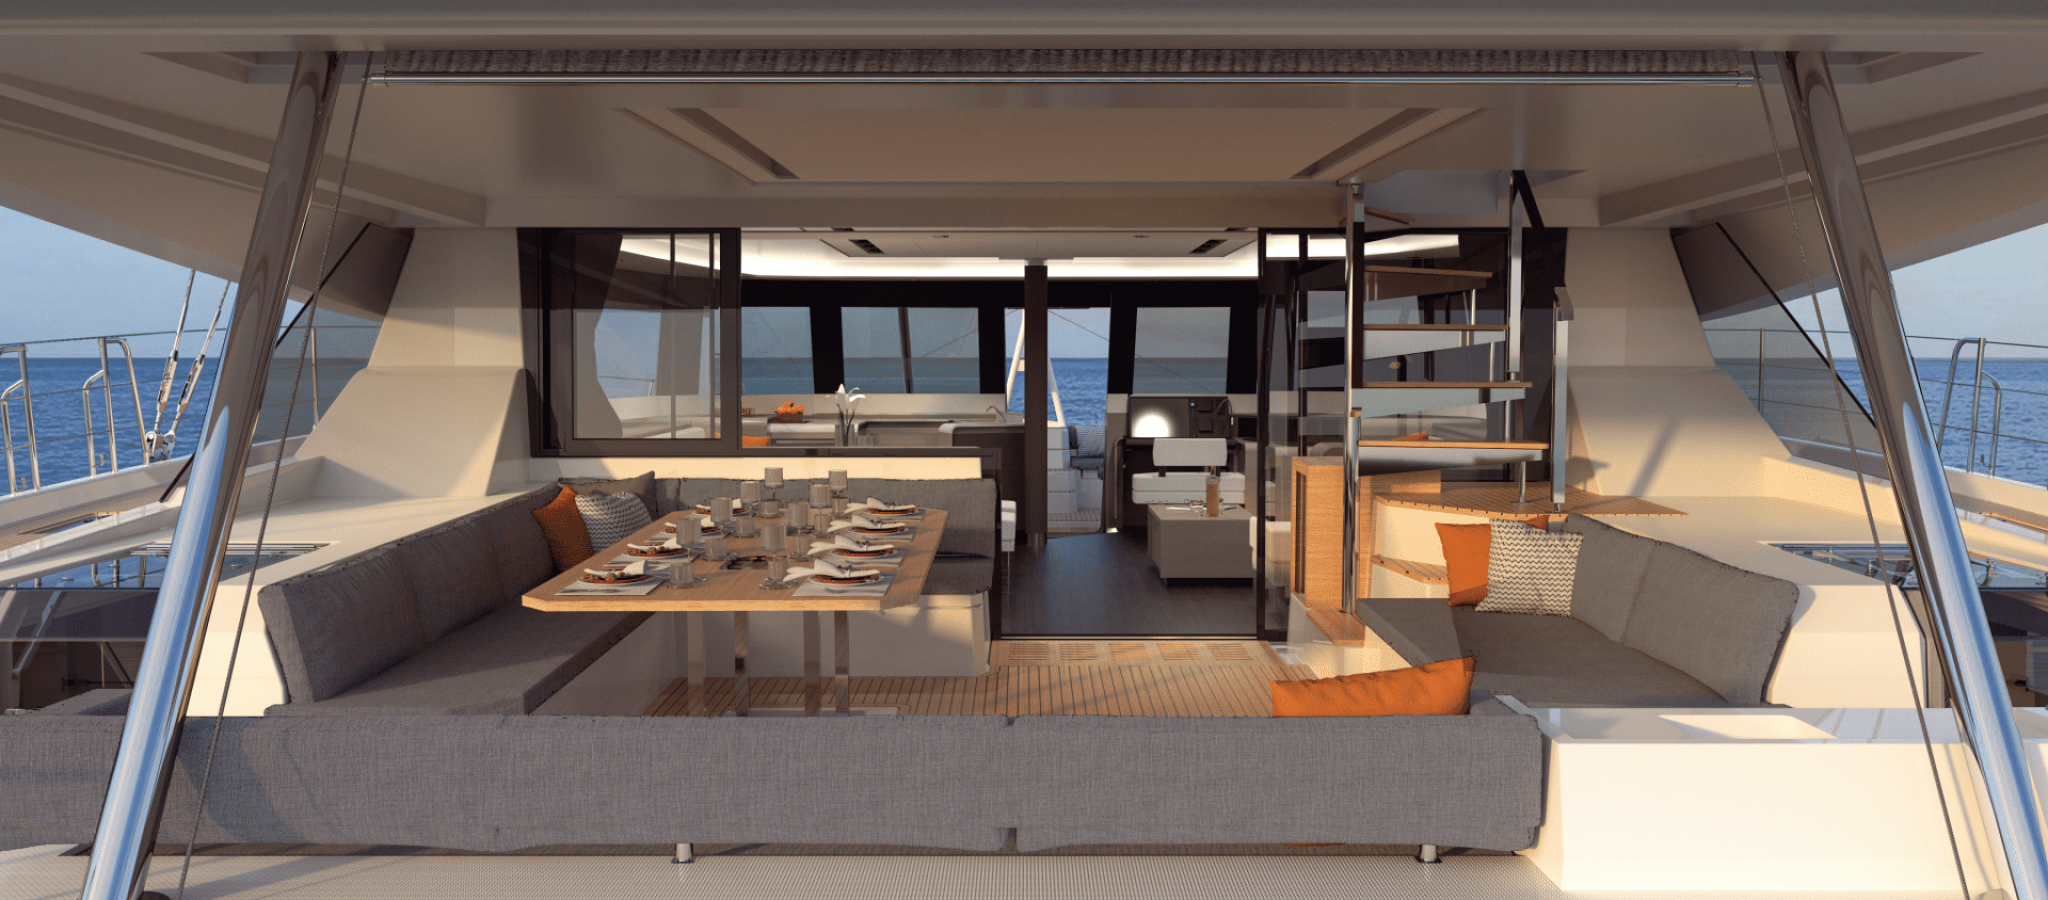 Samana-59-Fountaine-Pajot-Sailing-Catamarans-Exteriors-01--10-